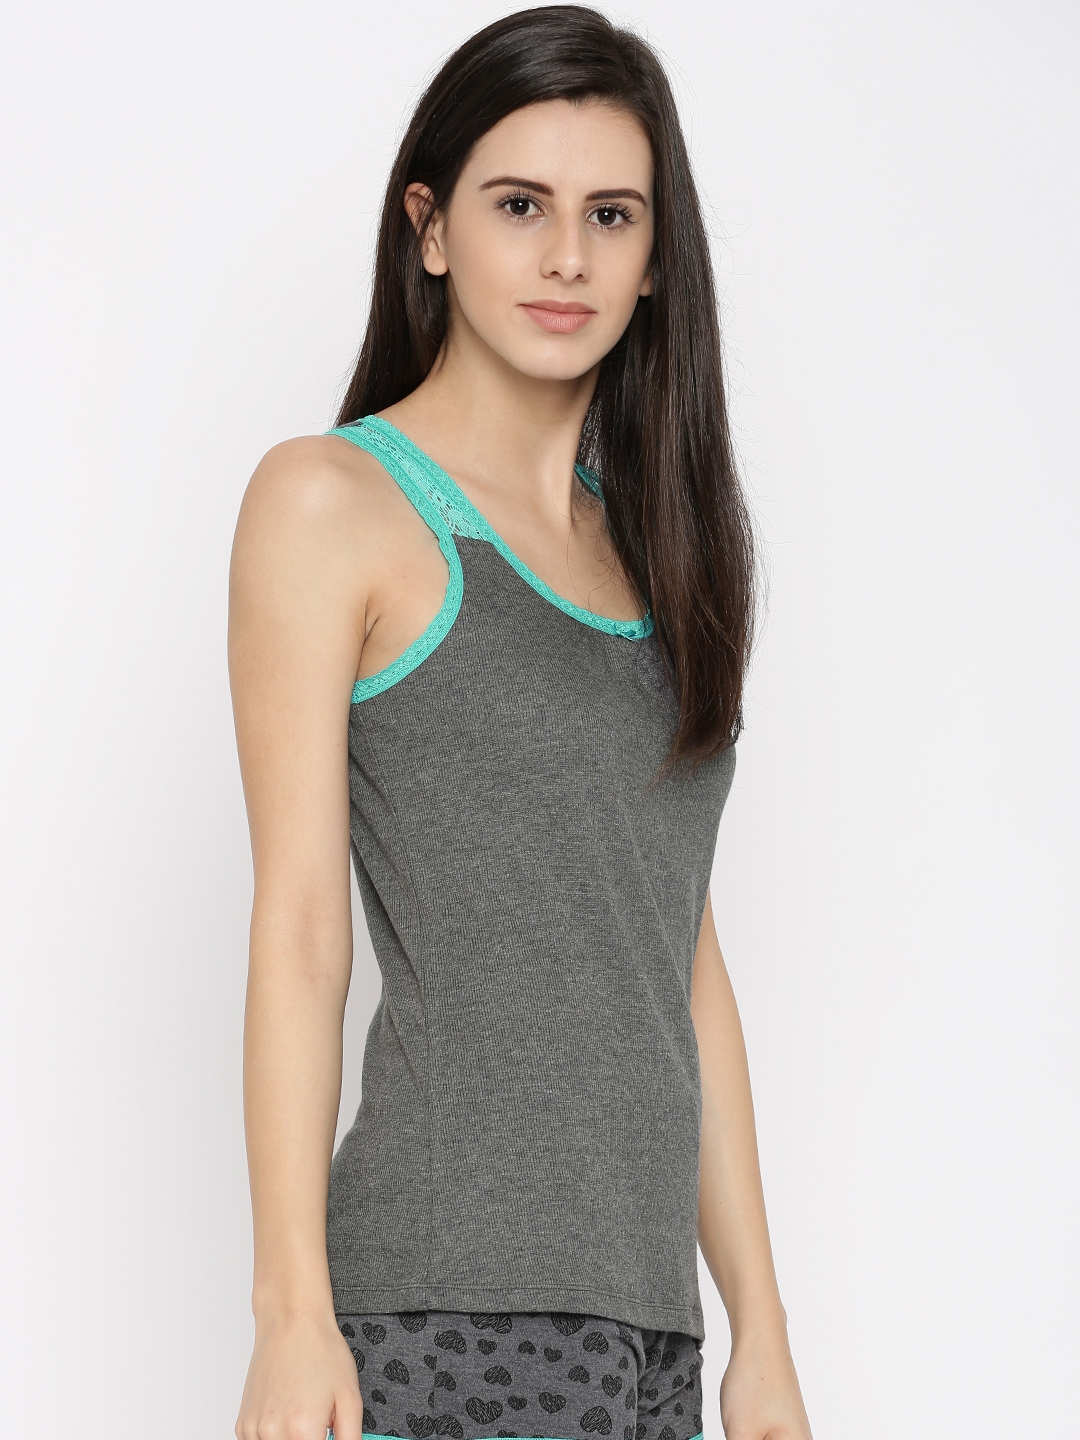 4dfe5282f5effe Buy Jockey Women Charcoal Grey Solid Lounge Tank Top - Lounge ...